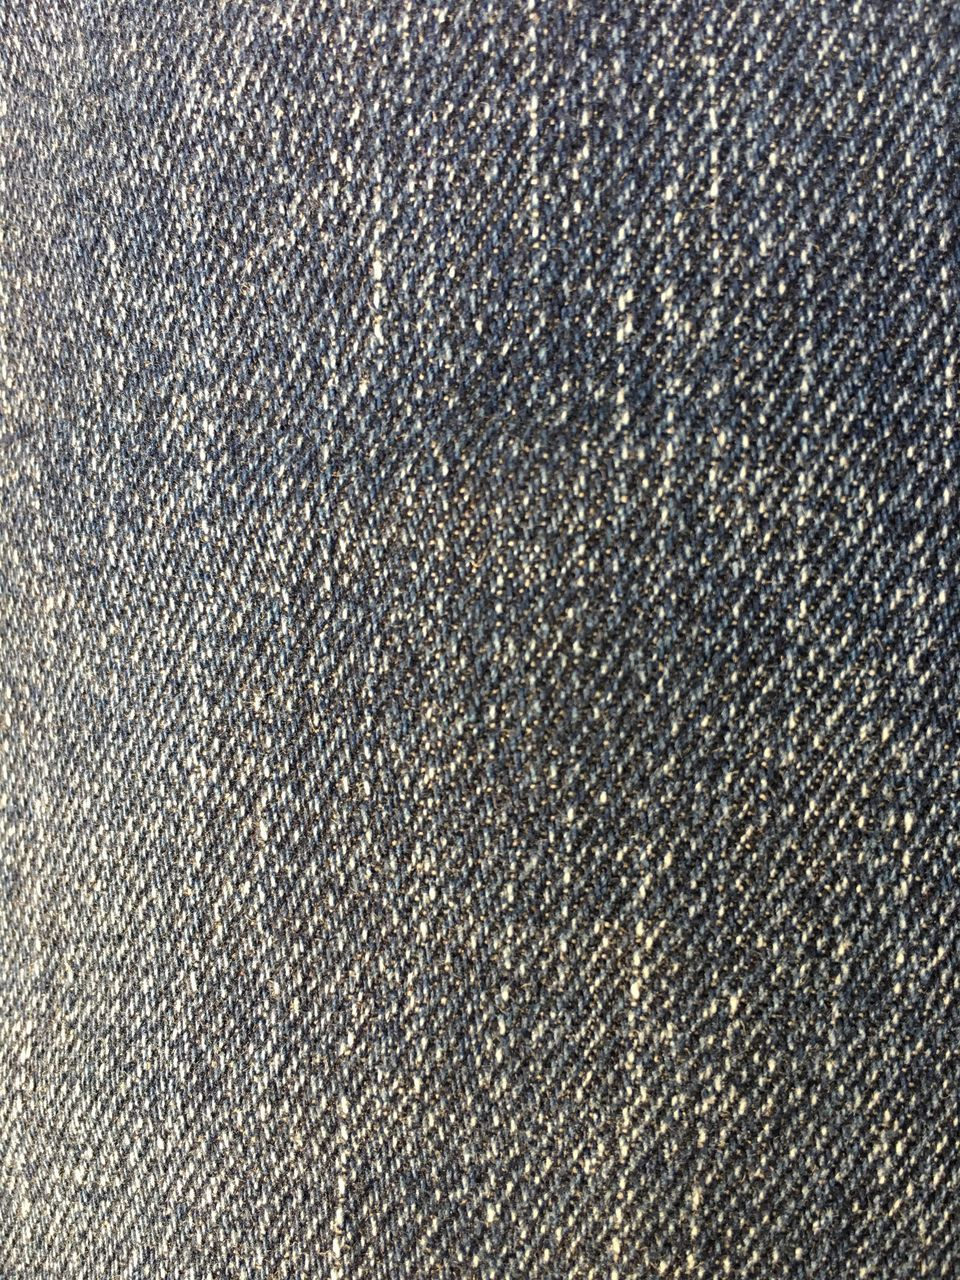 textured, textile, full frame, pattern, backgrounds, close-up, no people, rough, material, clothing, denim, indoors, day, woven, directly above, abstract, jeans, cotton, copy space, man made, garment, leather